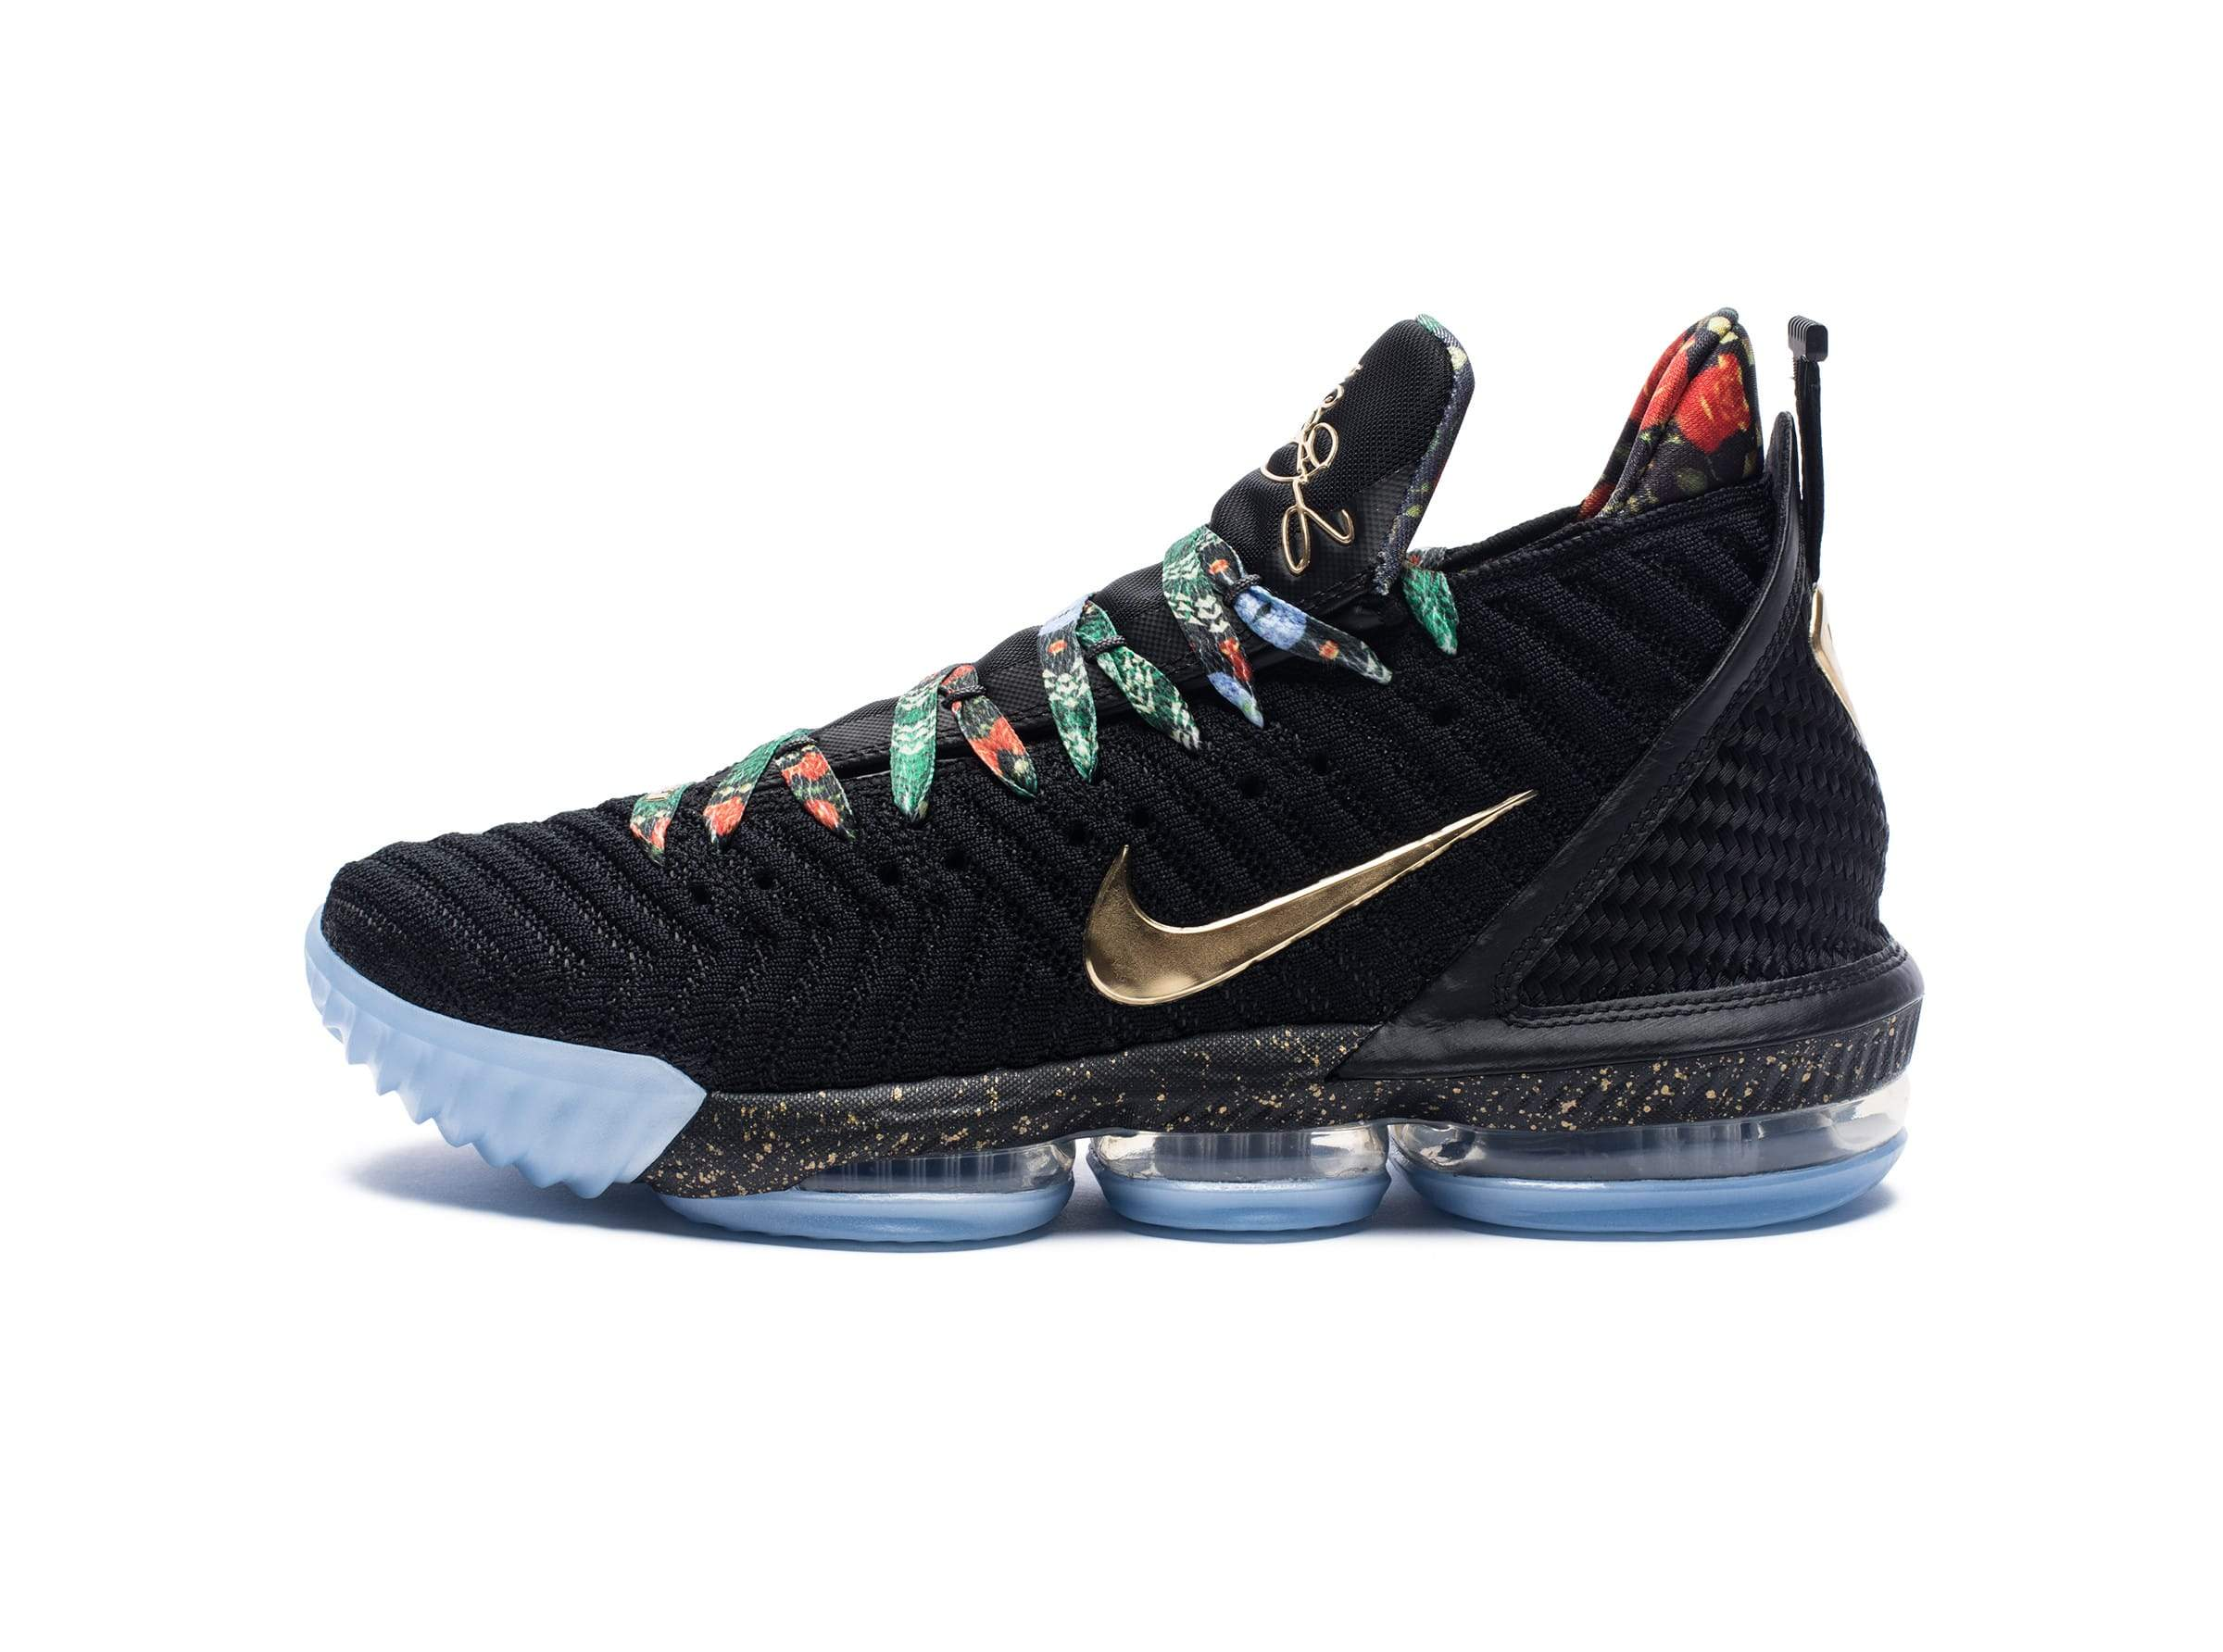 b6a1fa22fd74 ... lebron-16-watch-kings-throne-release-date footwear nike-lebron-xvi-kt CI1518-001.view 5 2400x  ...